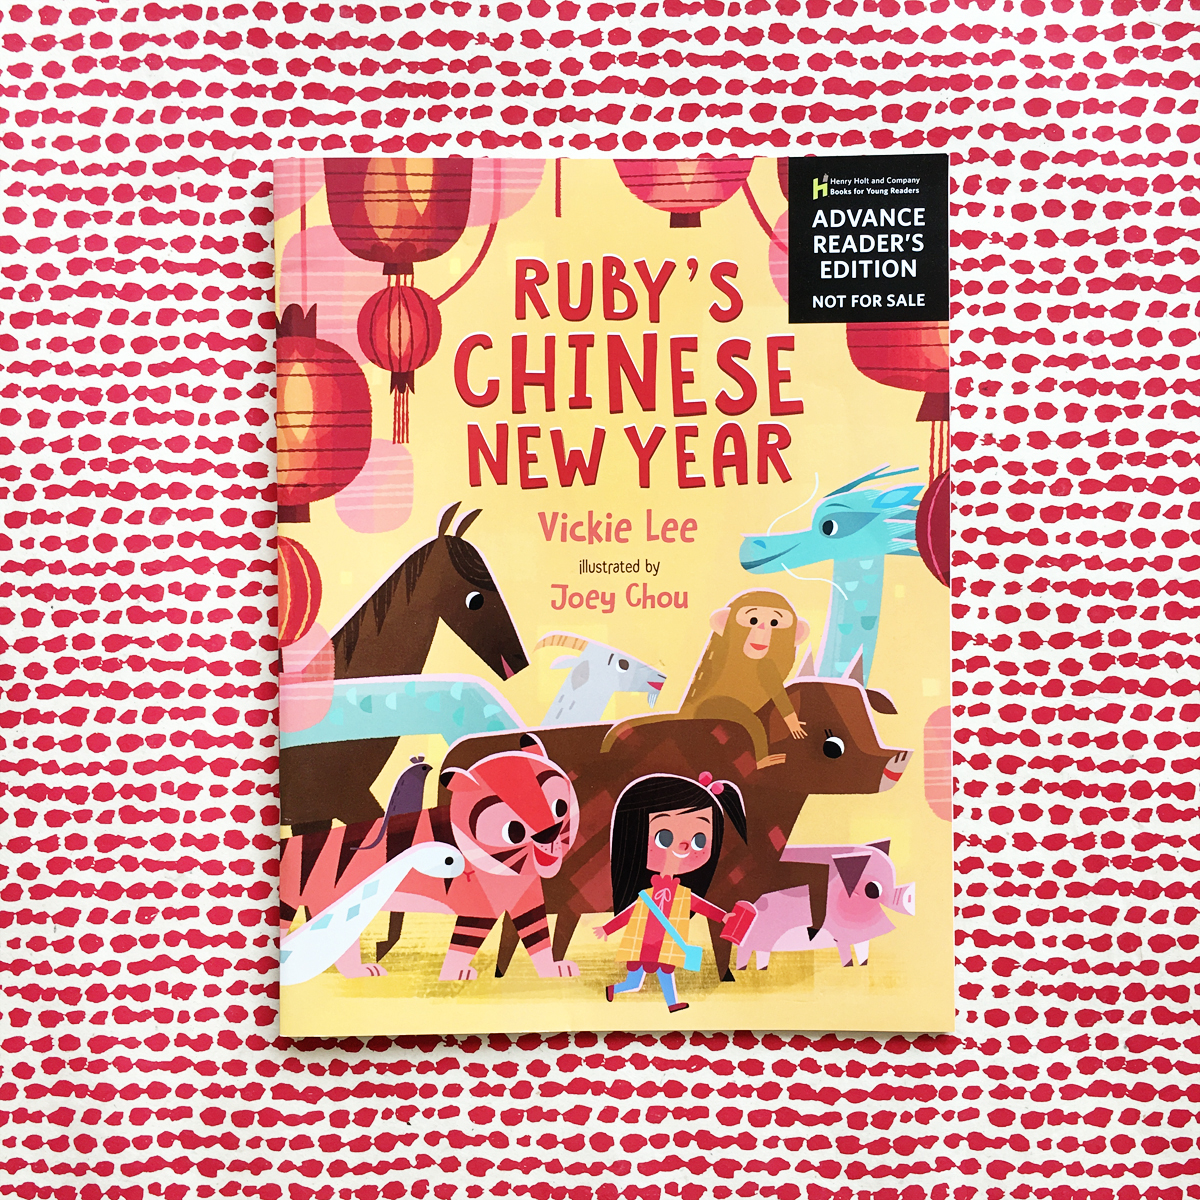 Ruby's Chinese New Year | Books For Diversity